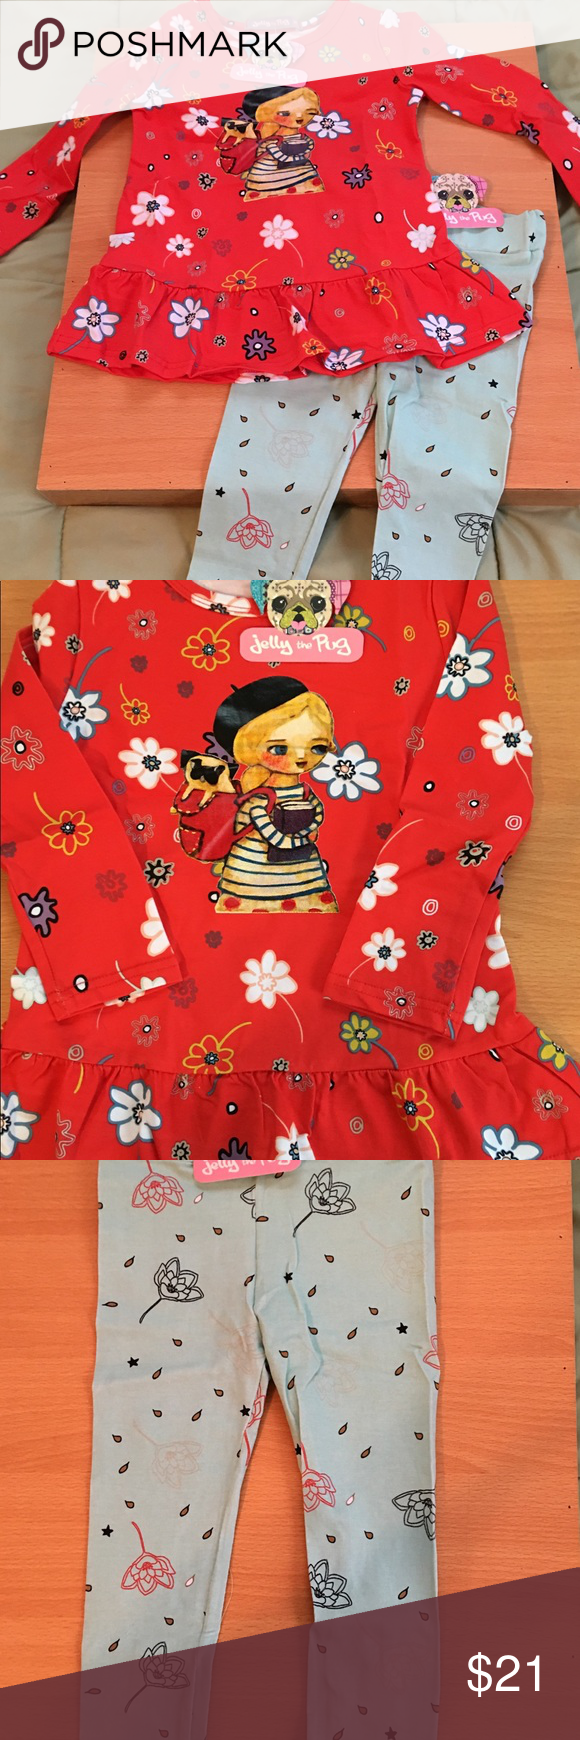 34f262f2cbd55 JELLY THE PUG TODDLER GIRLS TWO PIECE OUTFIT Jelly The Pug Persimmon Floral  Ruth Dress and